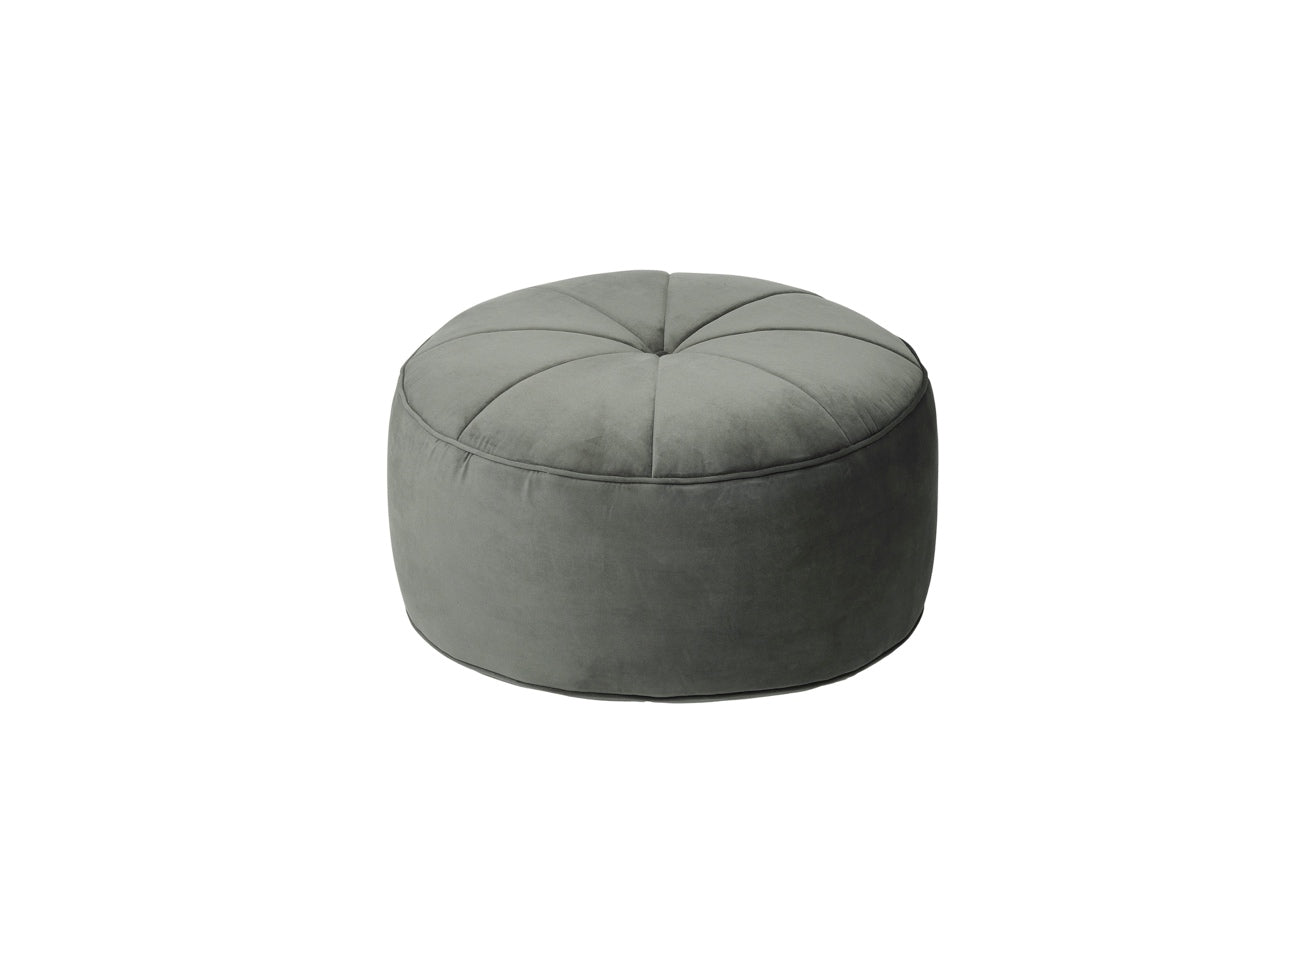 Subscription_OMNI_Cozy_Living_Pouf_Large_velvet_material_Army_furniture_office_comfortable_classic